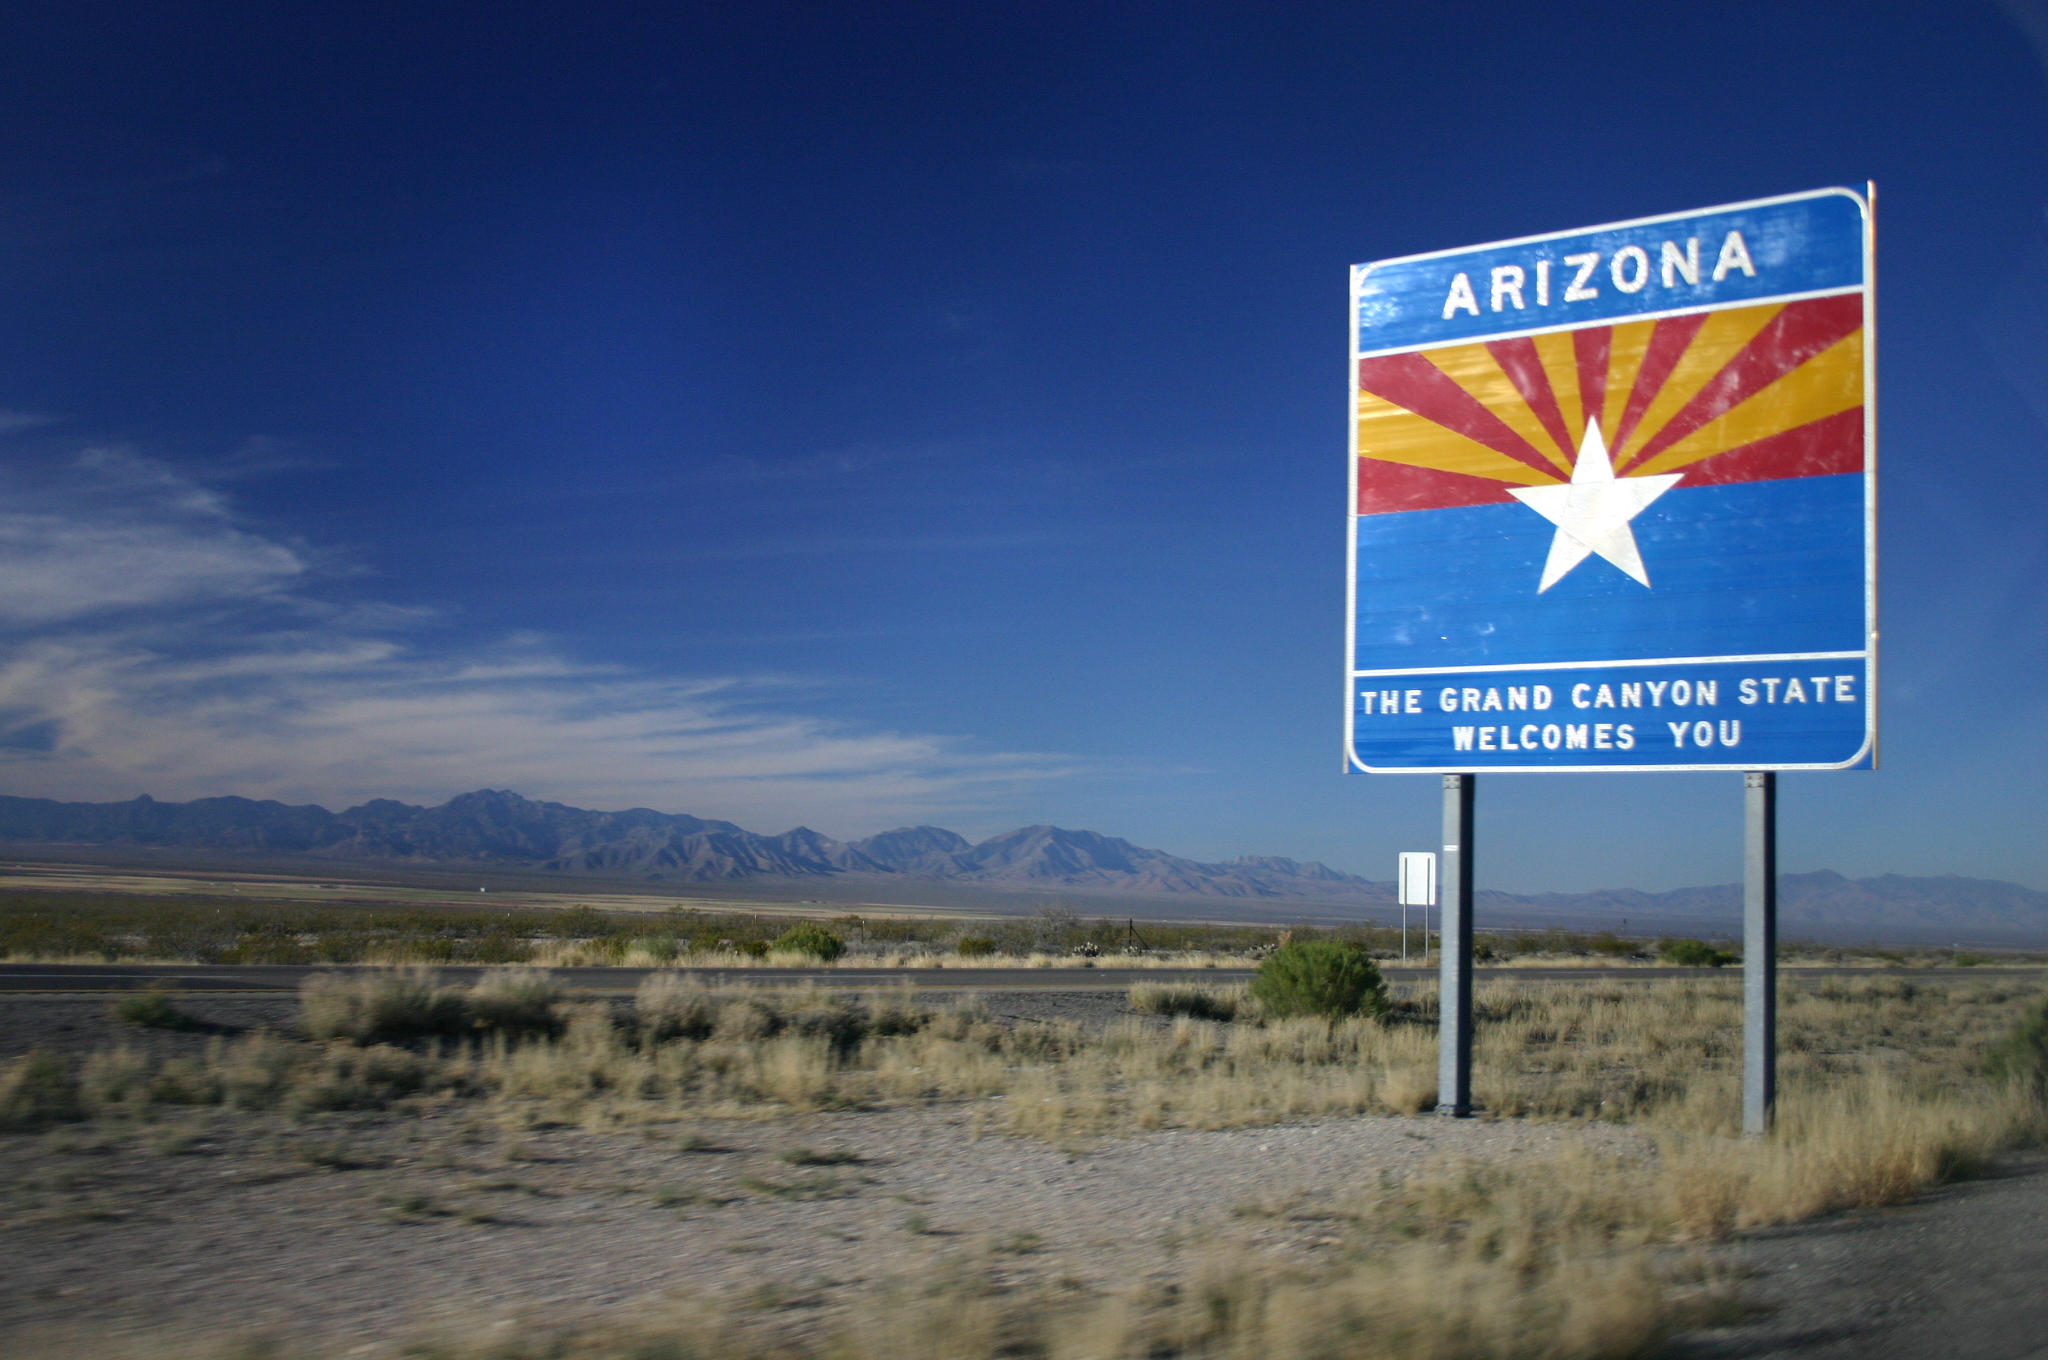 GOP West: could Republicans have an Arizona advantage? – The Spectator USA